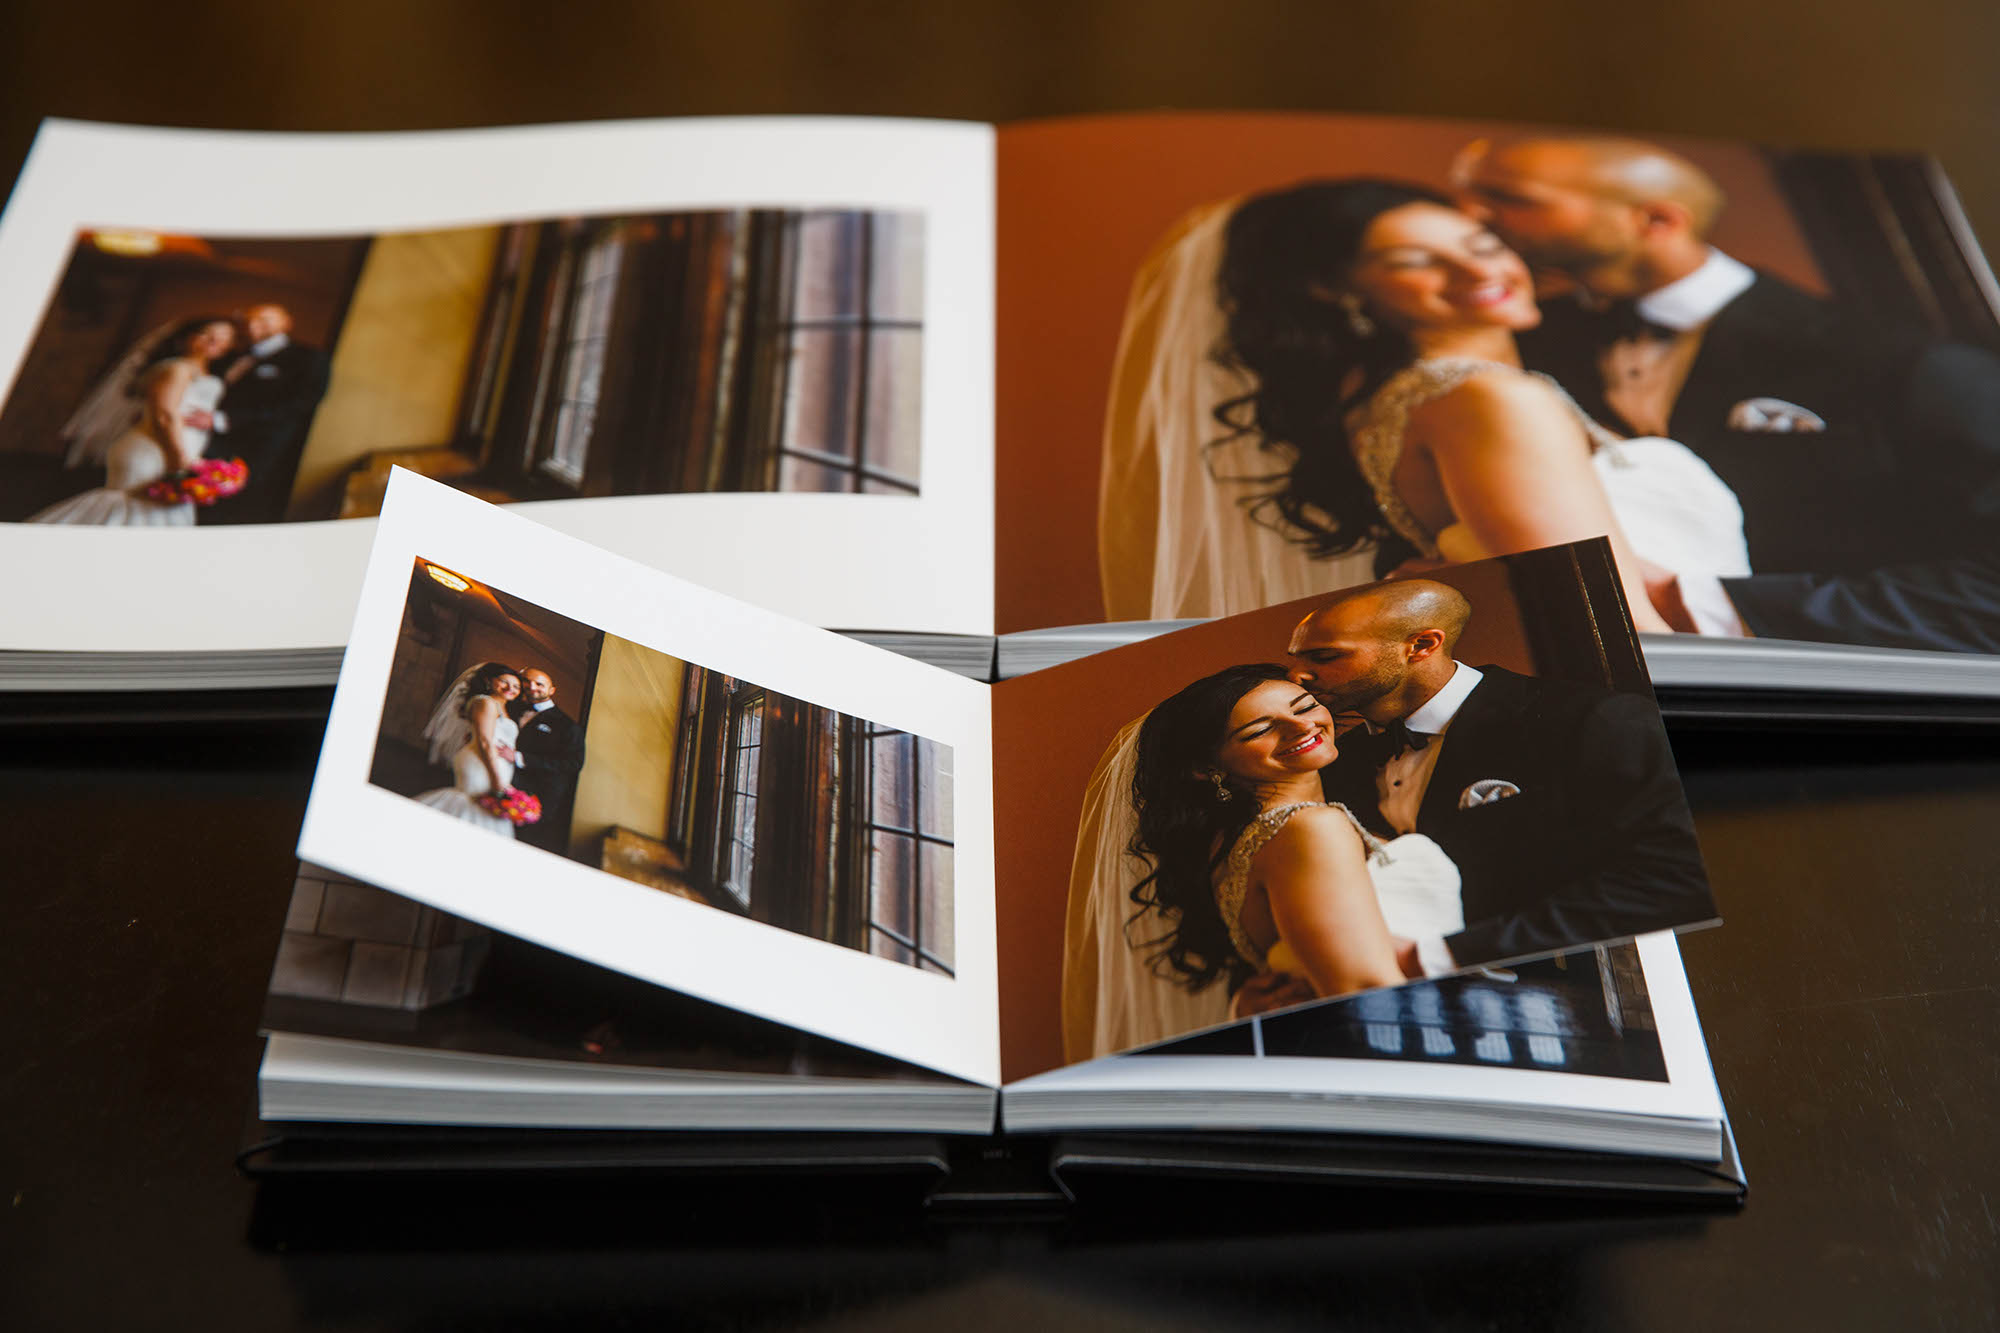 Copyright Genevieve Nisly Photography, Summer, Tudor Arms Hotel, Wedding Albums